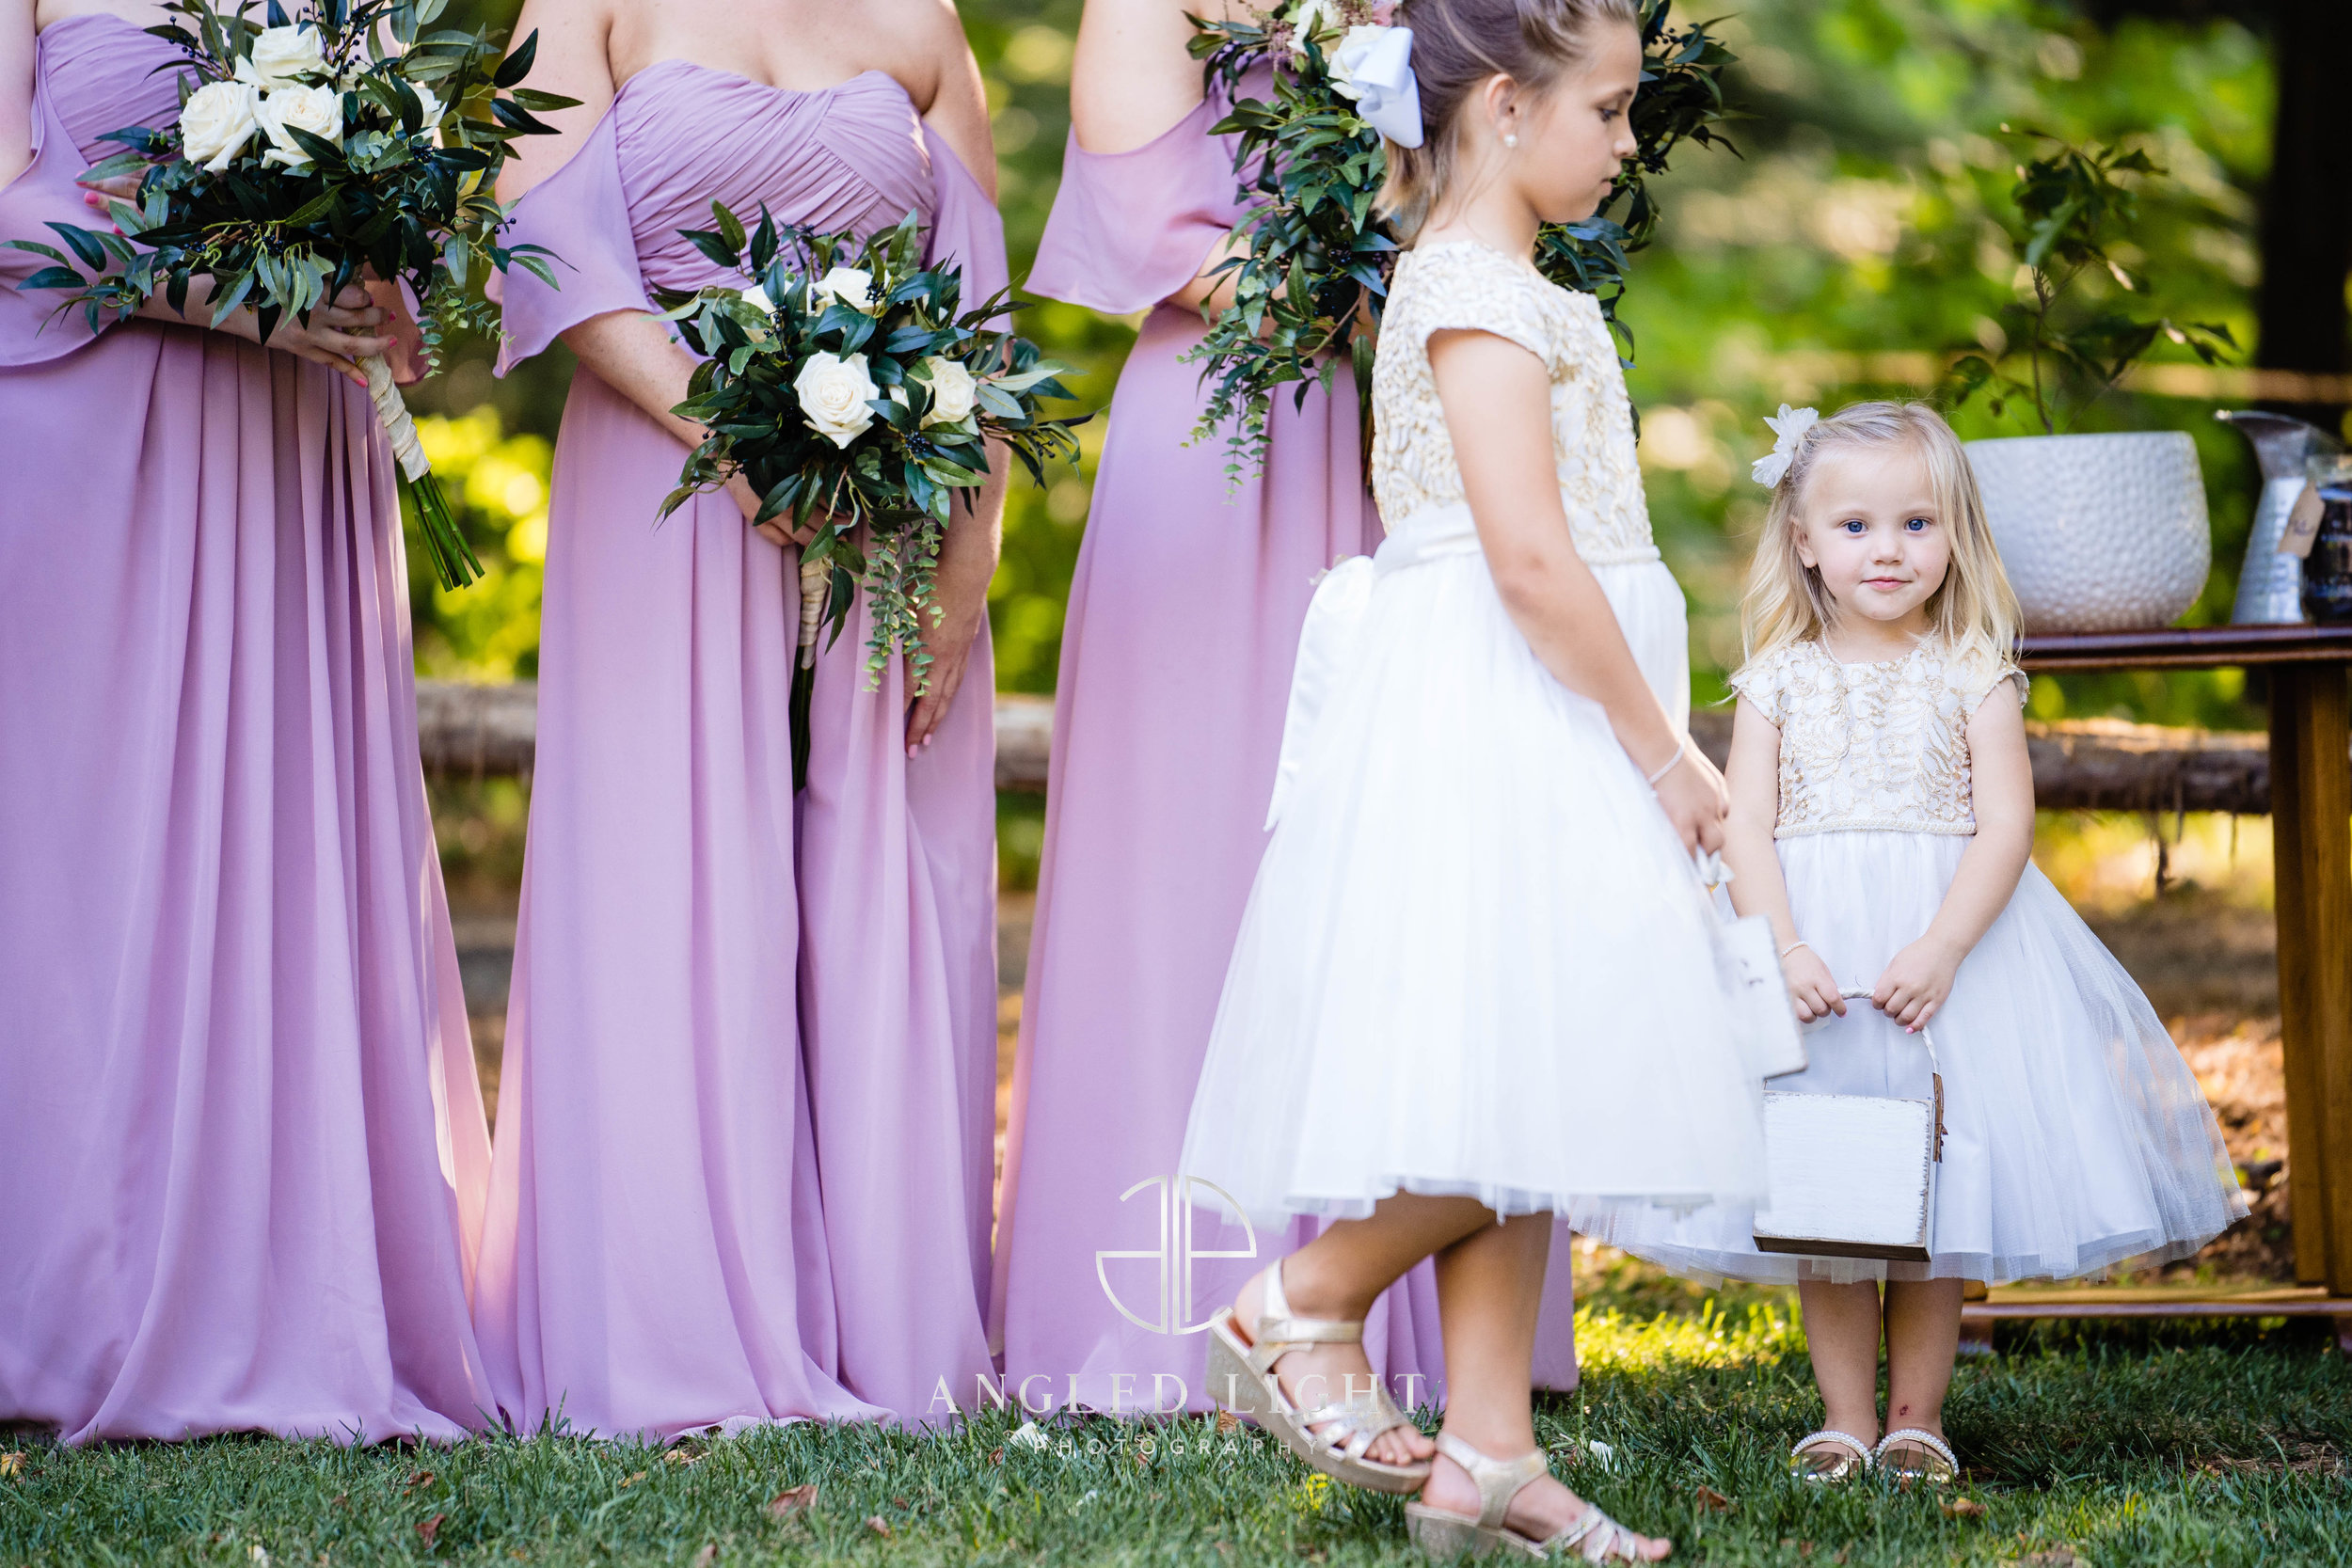 The flower girl | The Barn at Greene Acres in Honea Path, SC